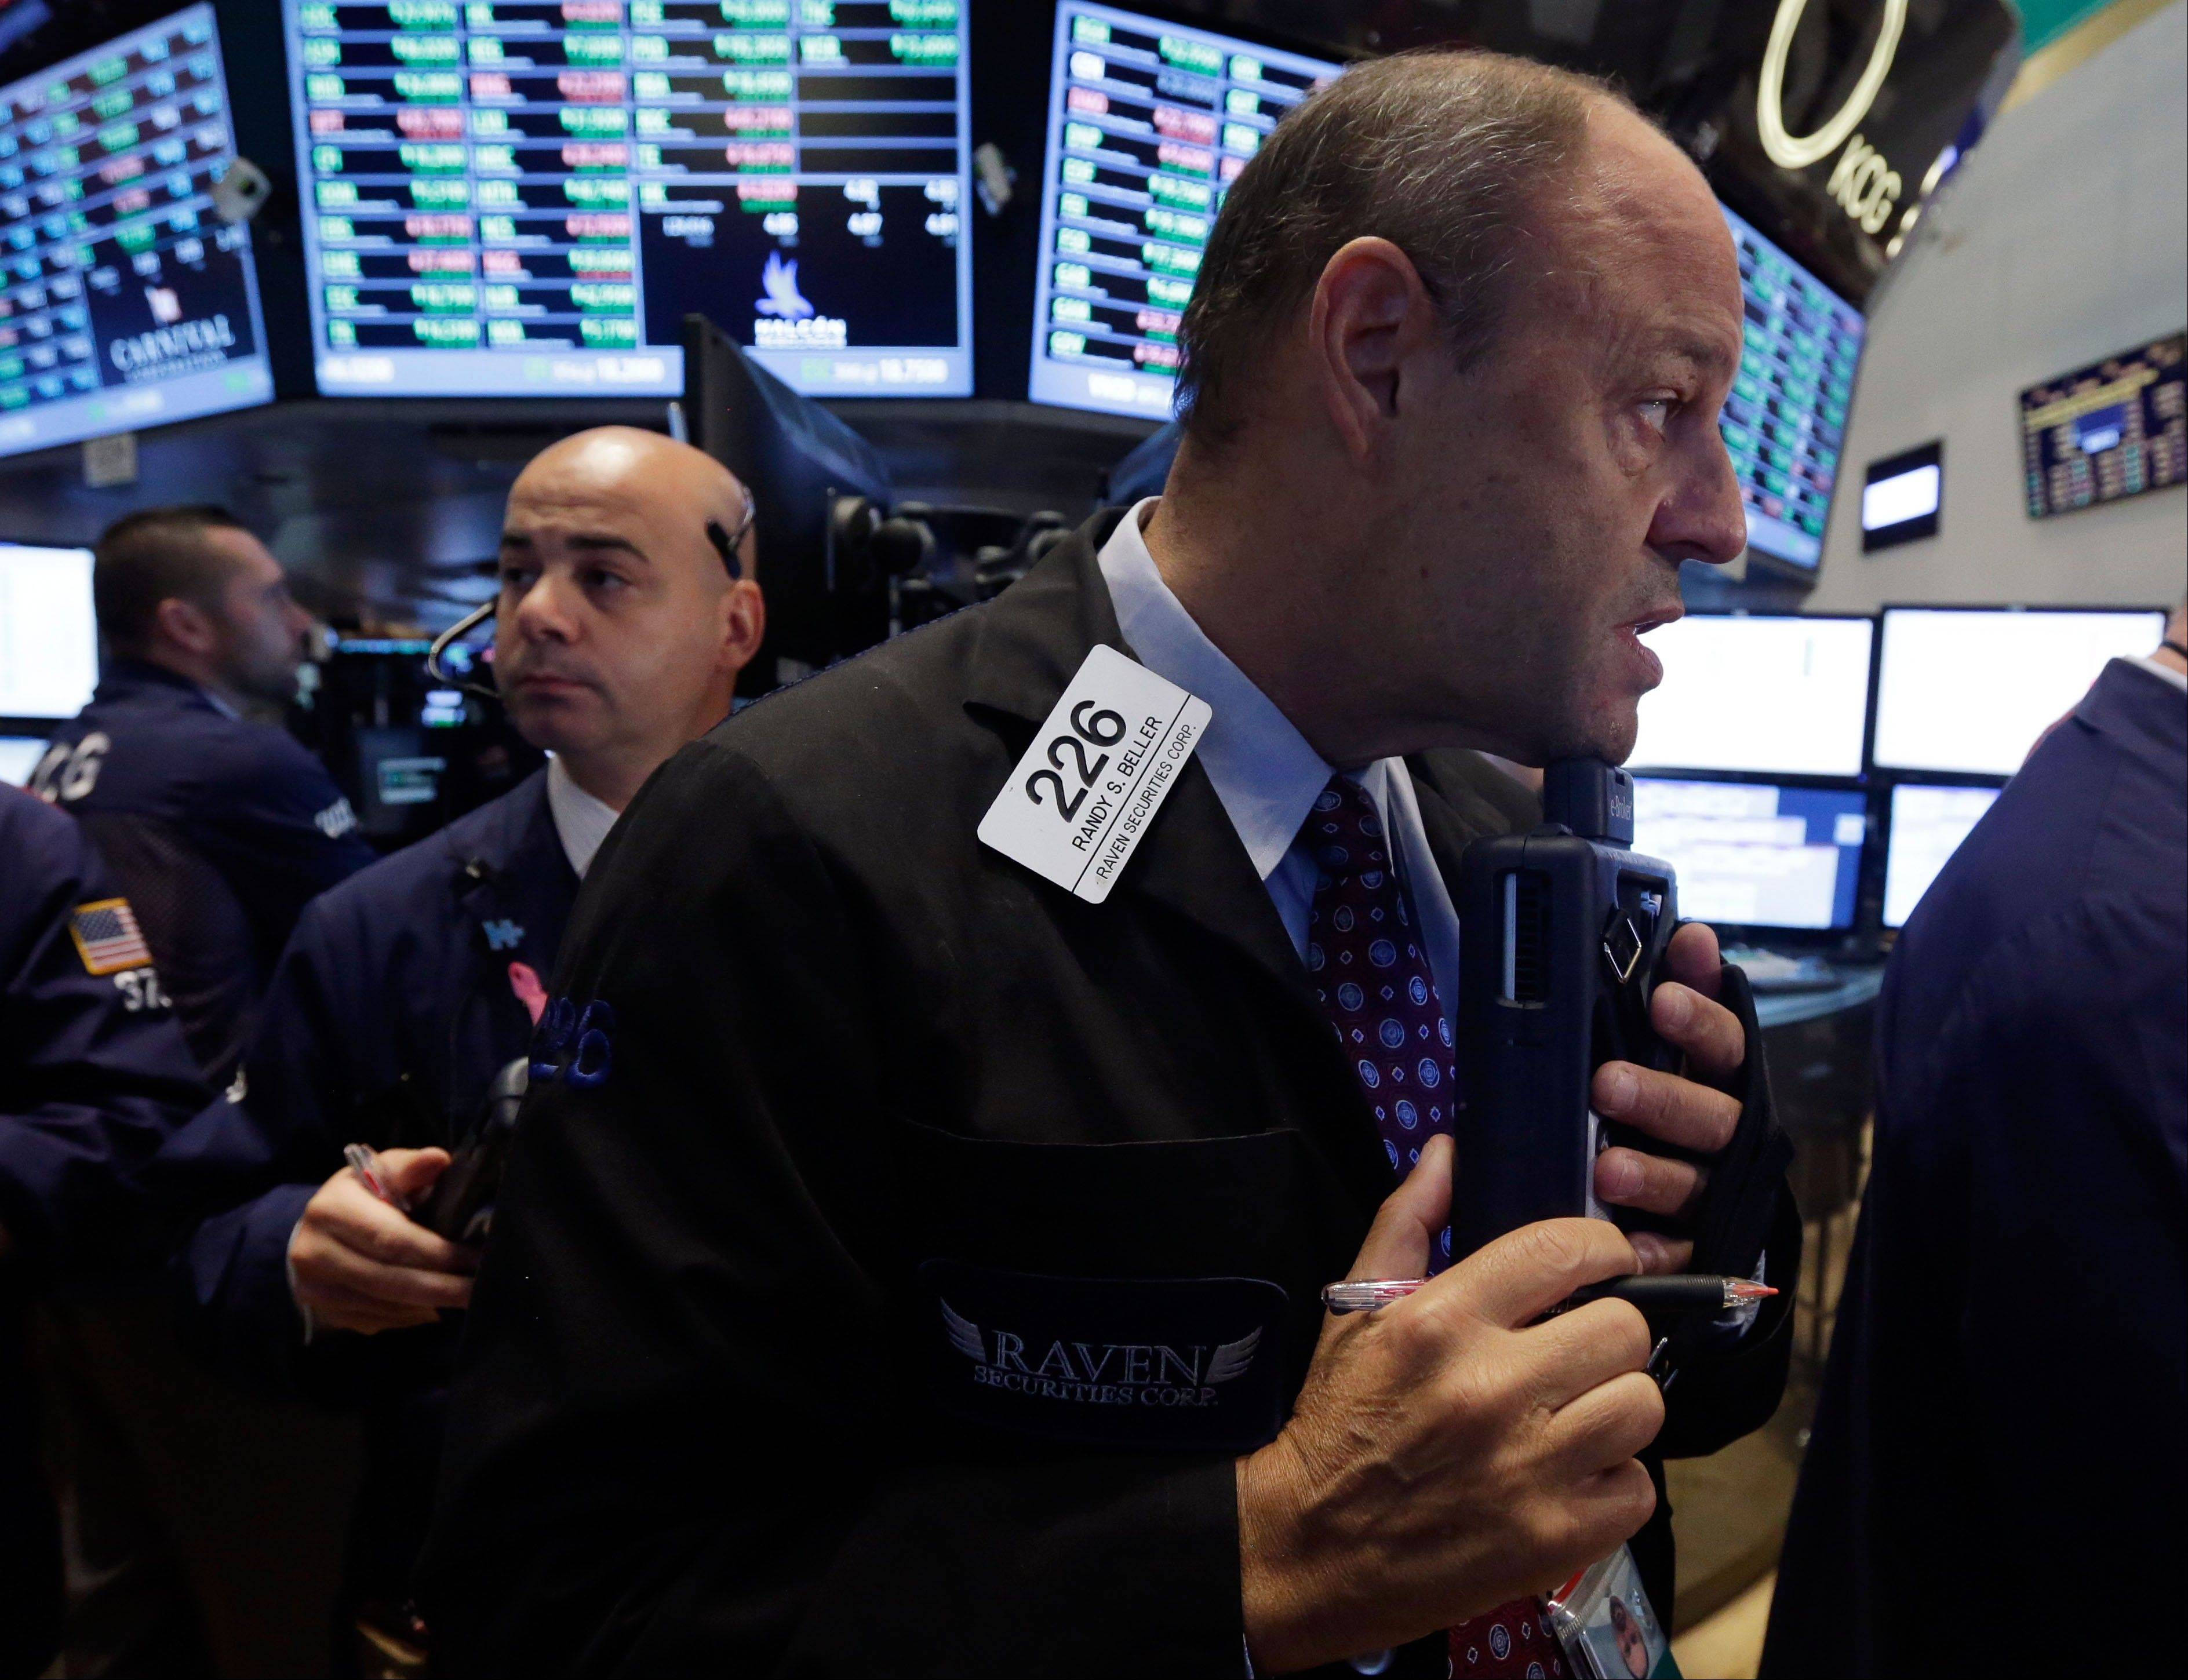 U.S. stocks were little changed, after the Standard & Poor's 500 Index rallied to a record, as investors watched corporate earnings to assess the strength of the economy before tomorrow's employment data.